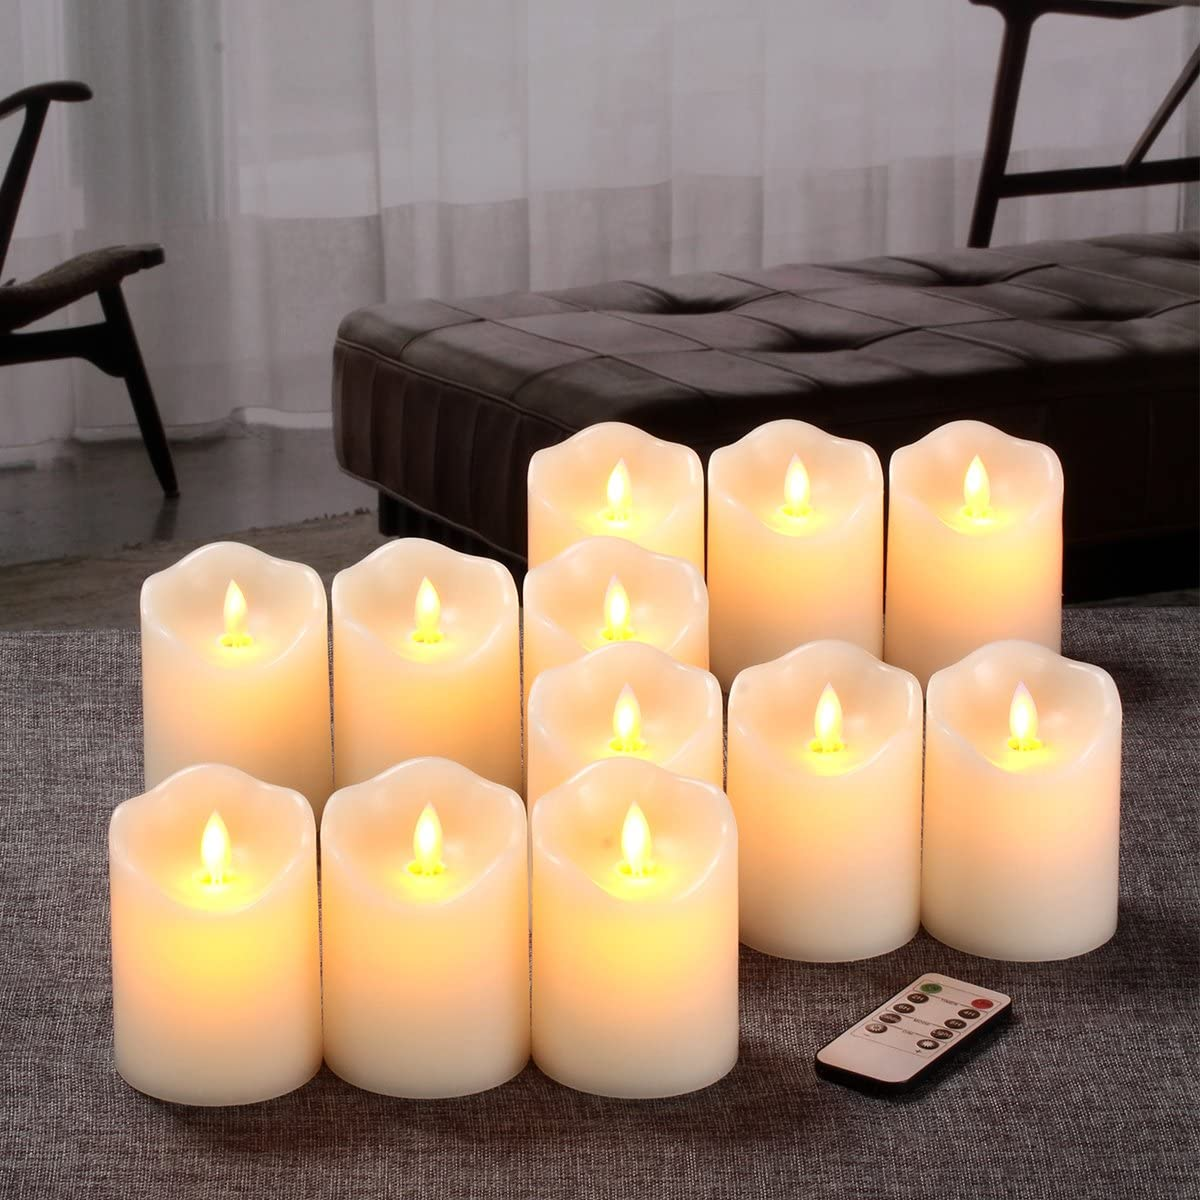 Flameless Candles Flickering Battery Operated LED Candles Set of 12 D 3 X H 4 Ivory Real Wax Pillar with Moving Flame 10-Key Remote Control and Cycling 24 Hours Timer